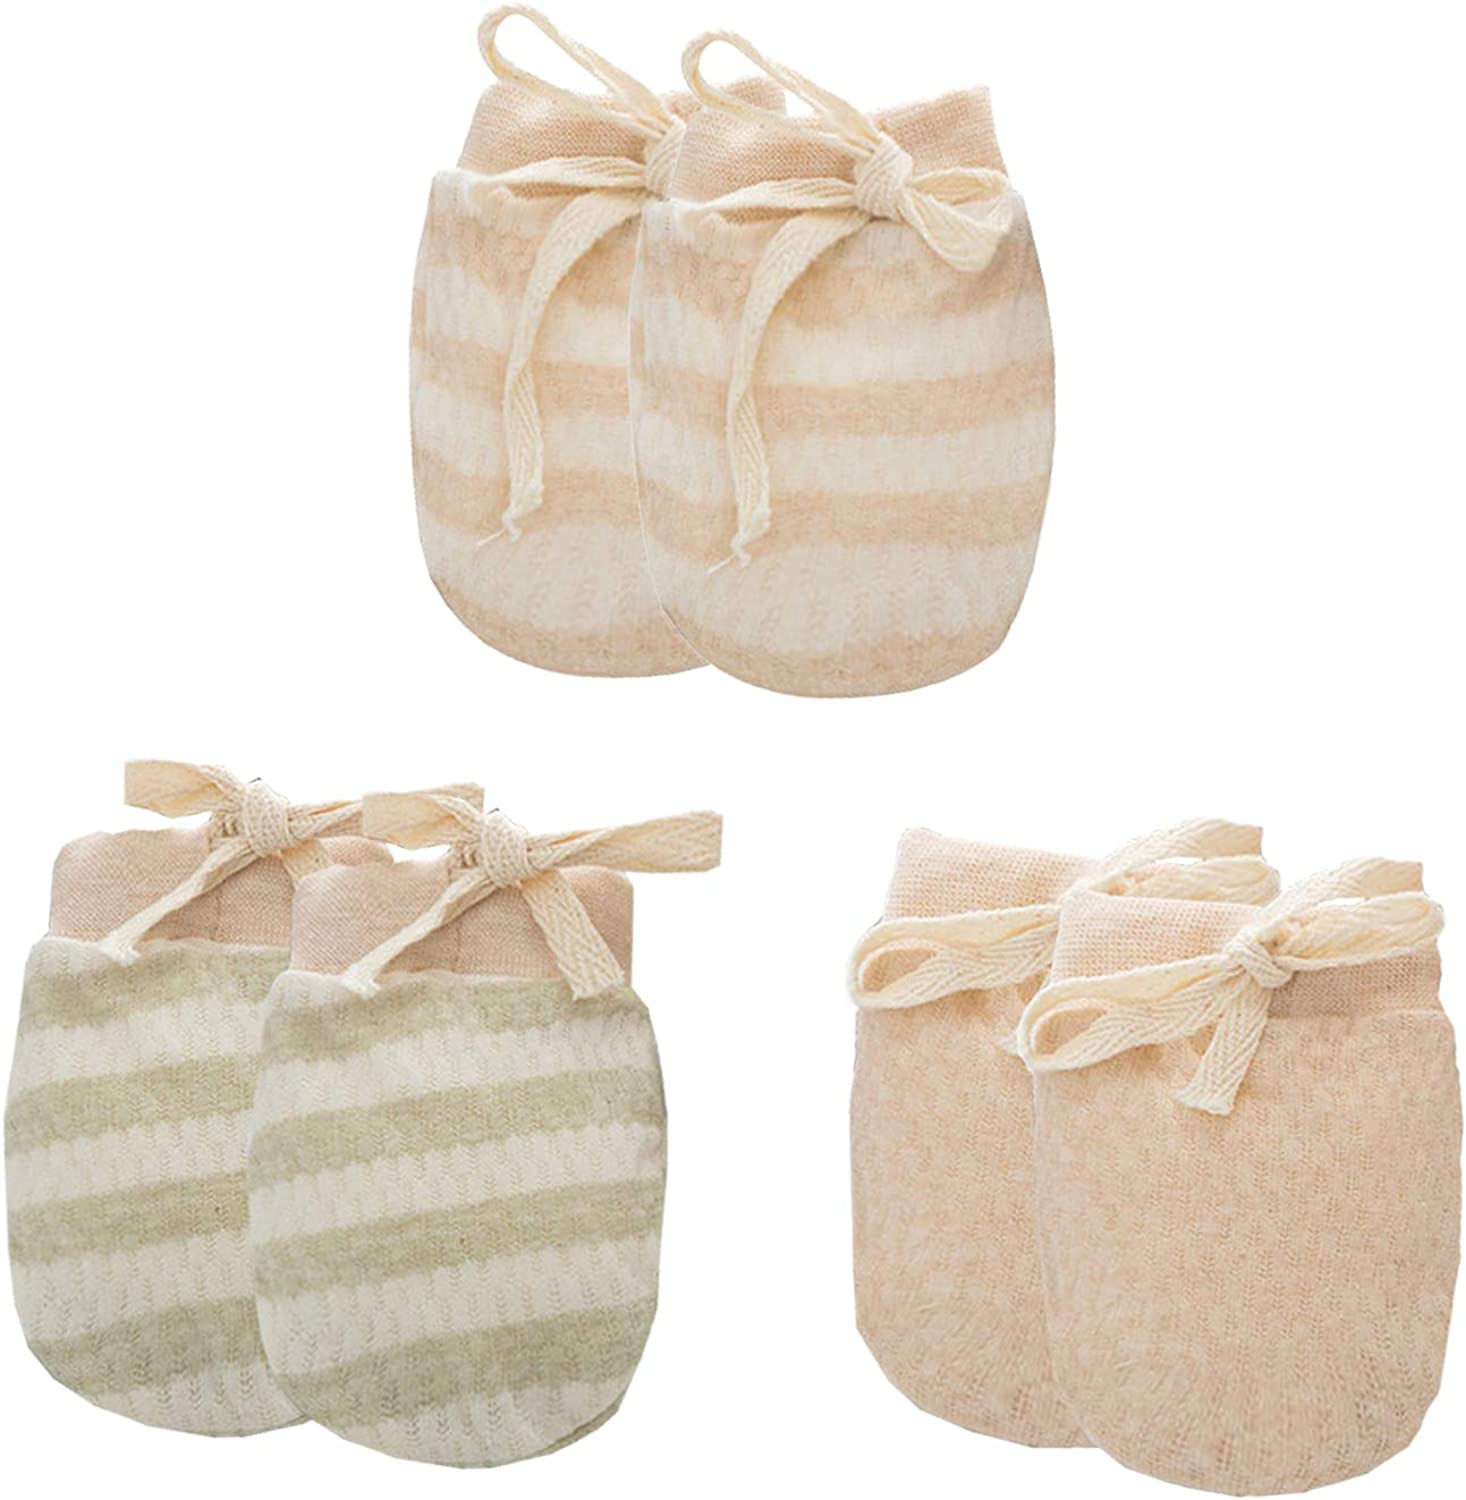 3 Pack Baby Organic Cotton Gloves 0-6 Months Striped Solid Newborn Infant Boys Girls No Scratch Mittens with Strap